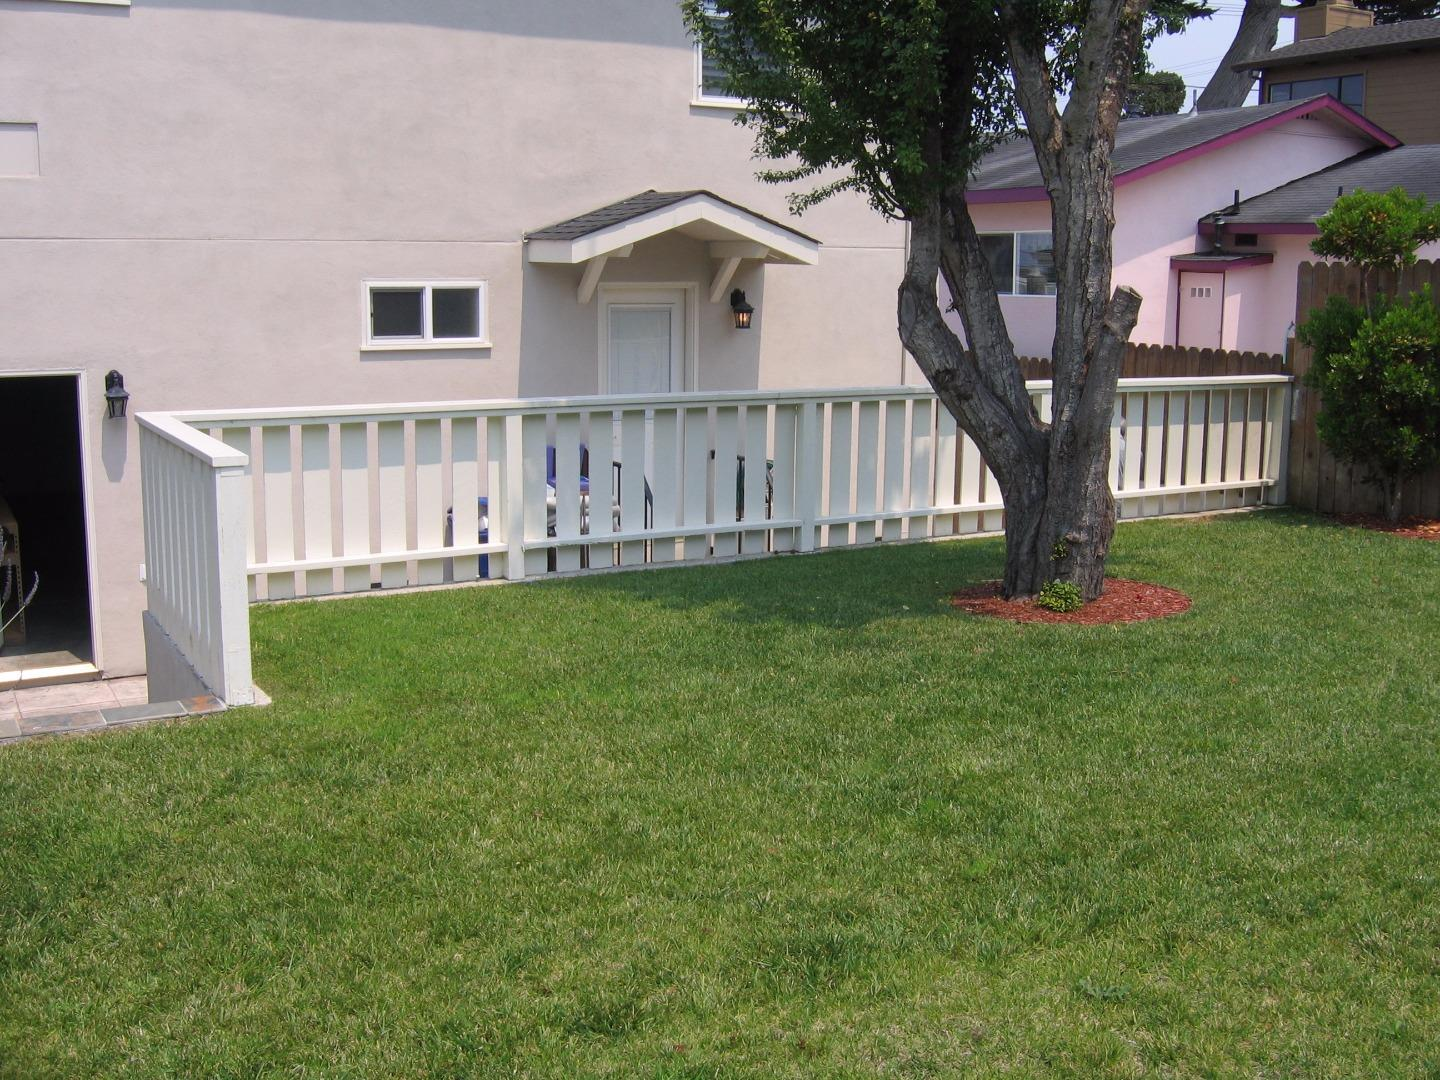 Additional photo for property listing at 619 Oak Street 619 Oak Street Monterey, Калифорния 93940 Соединенные Штаты